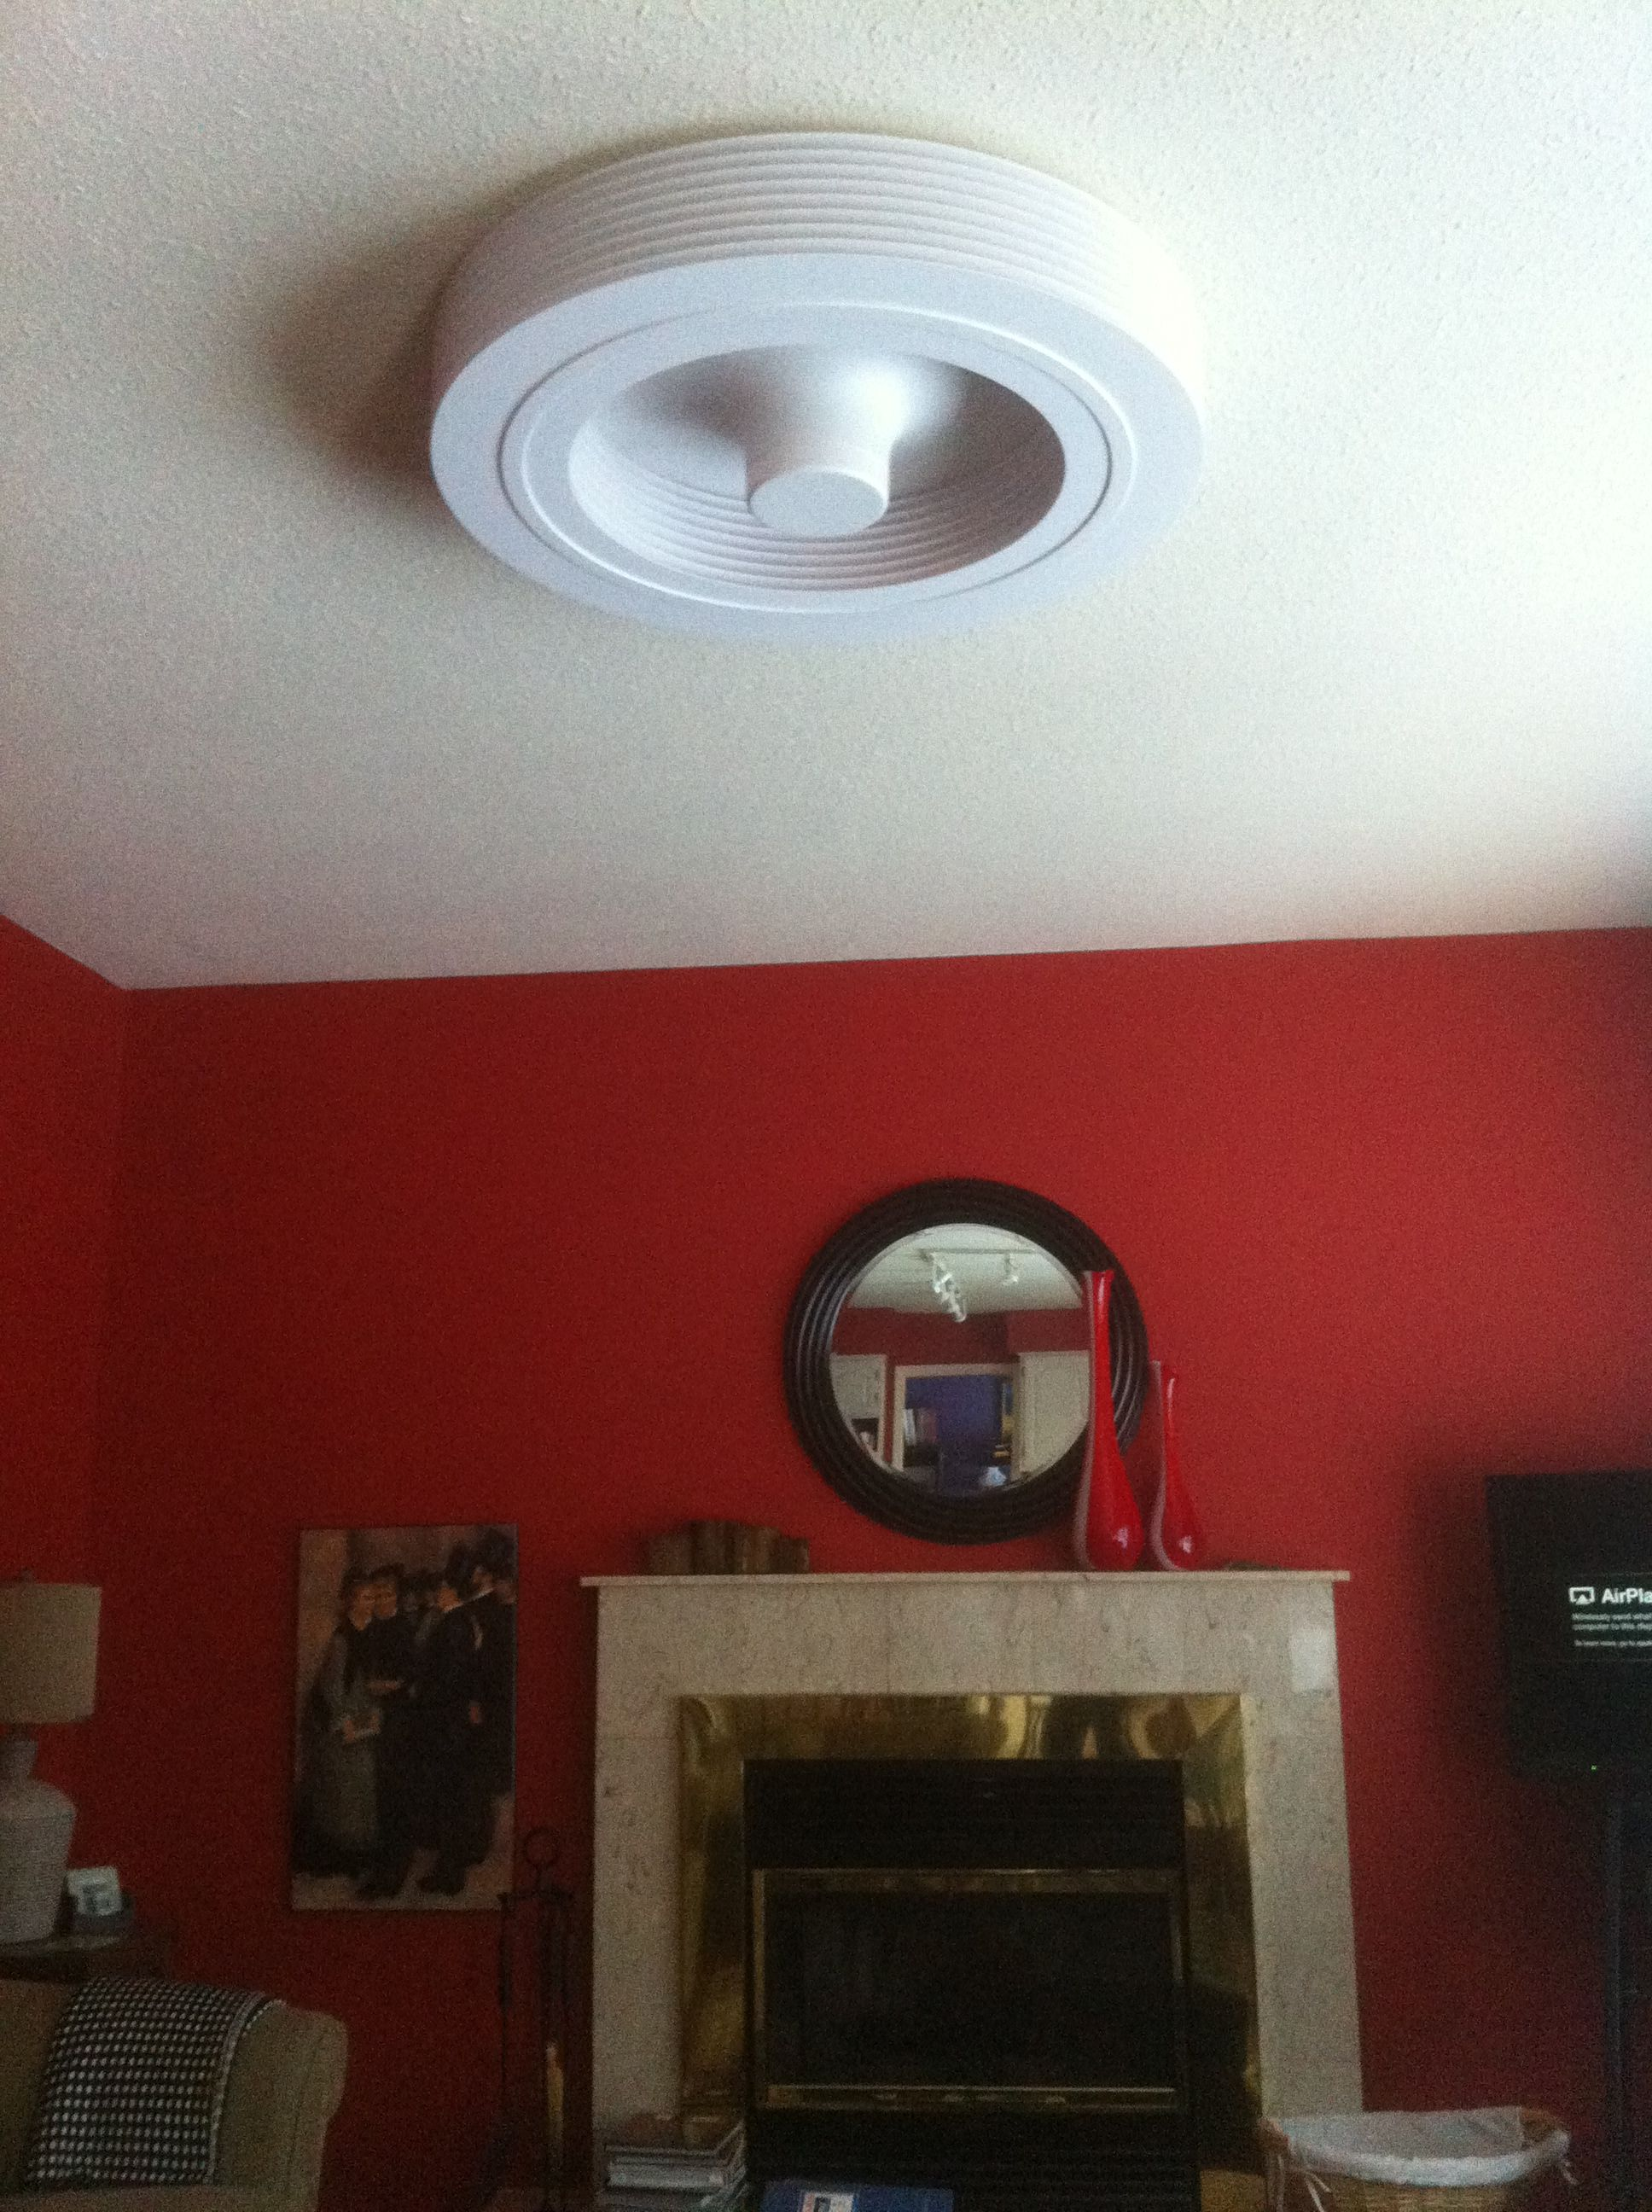 Bladeless Ceiling Fan bladeless ceiling fan install! | exhale fans owners club